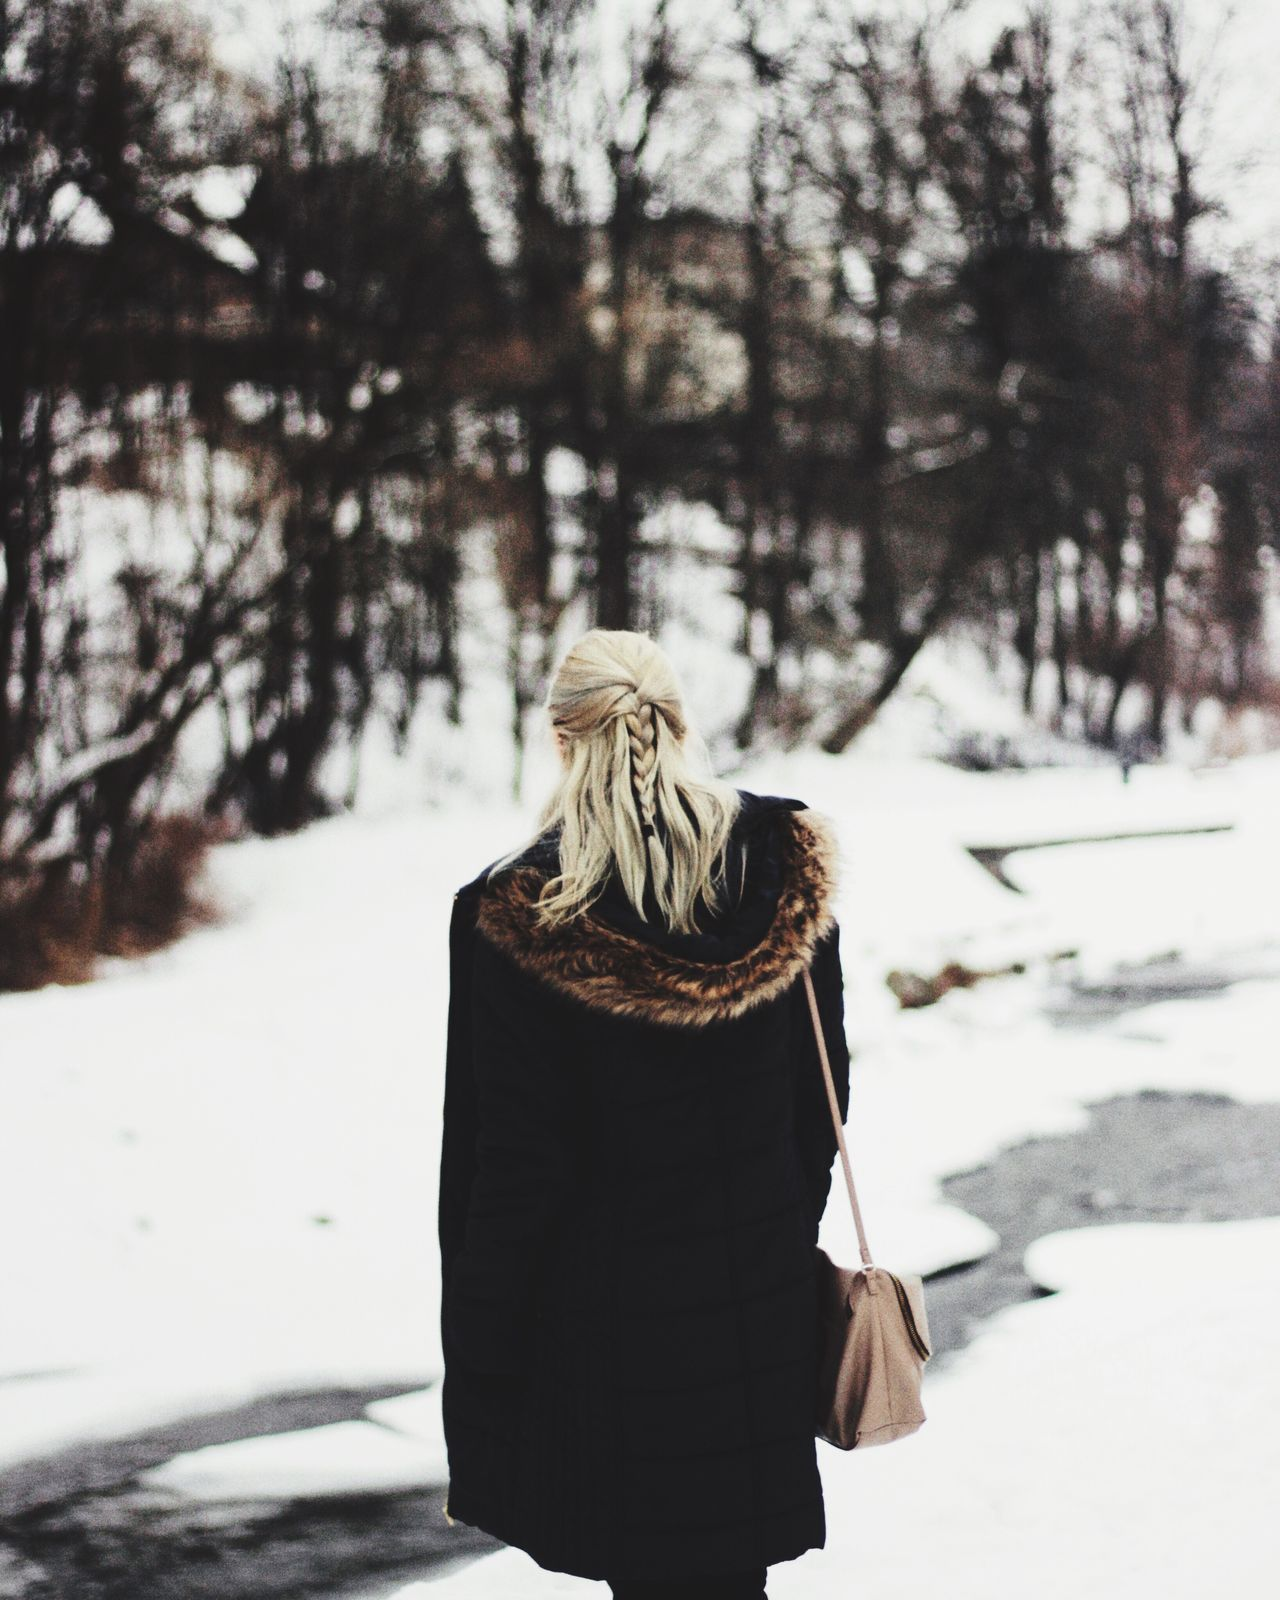 Tree Focus On Foreground Winter Cold Temperature Outdoors Day Nature Snow One Person Beauty In Nature Girl Greyhair  Grey Canon Canonphotography Canoneos Canon600D CanonEOS600D Back Young Women Younggirl